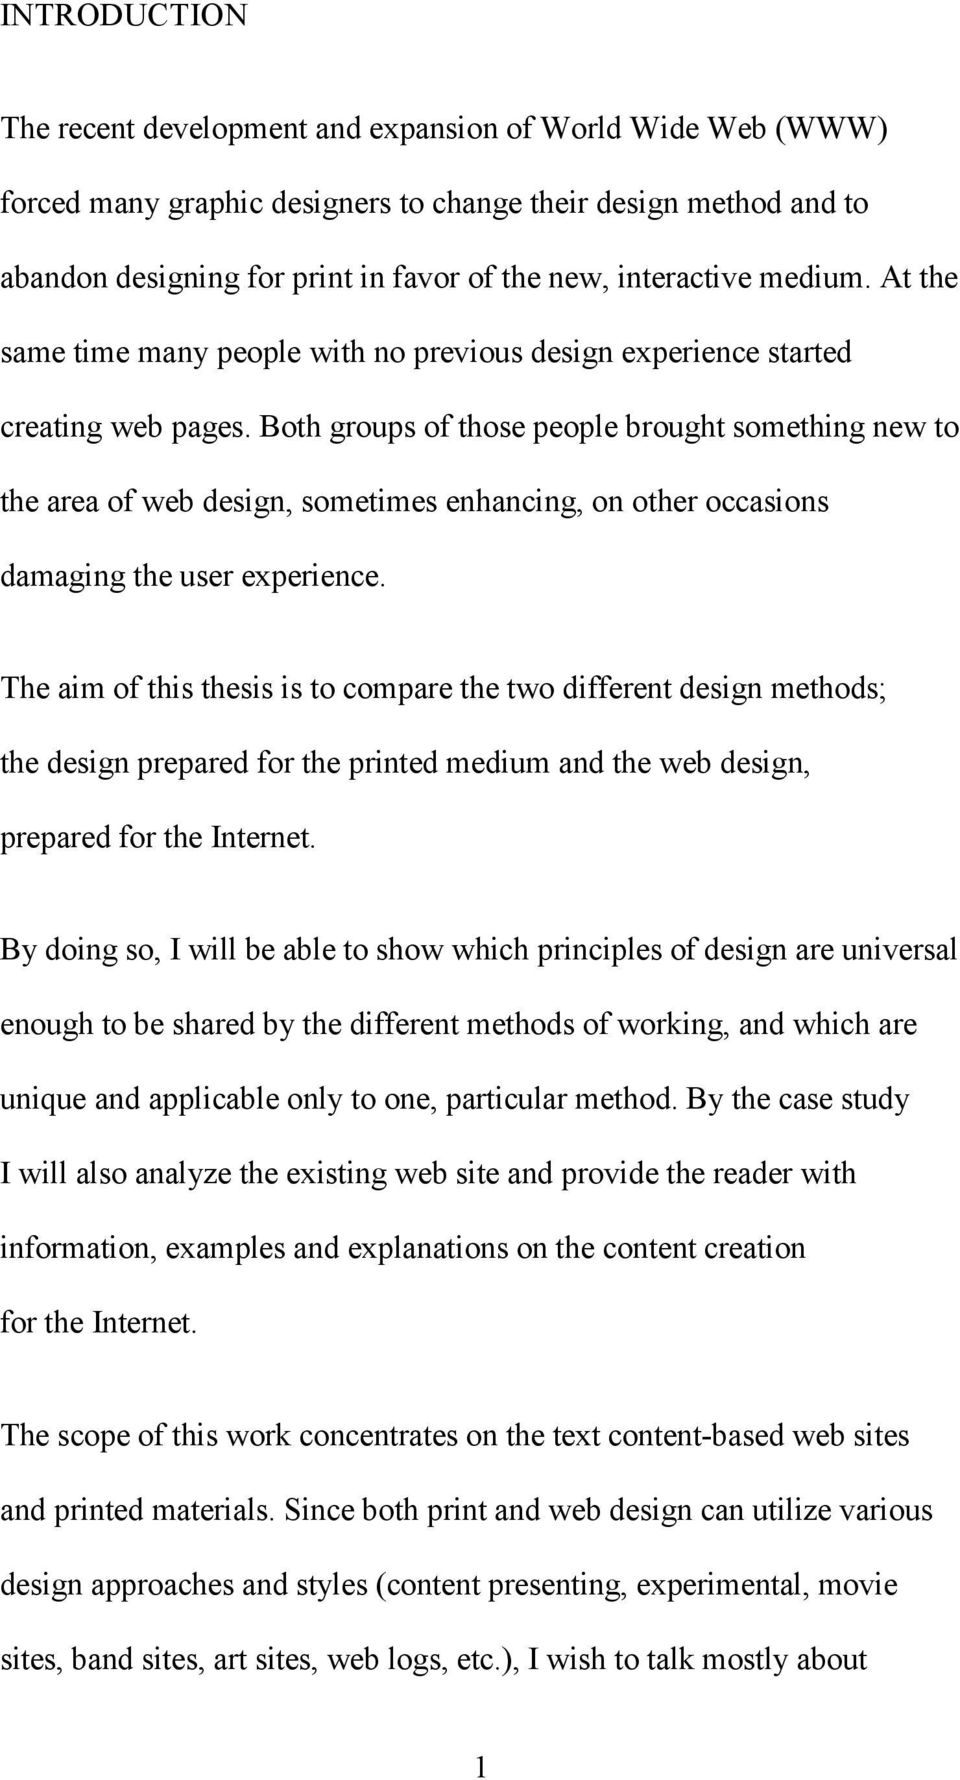 Both groups of those people brought something new to the area of web design, sometimes enhancing, on other occasions damaging the user experience.